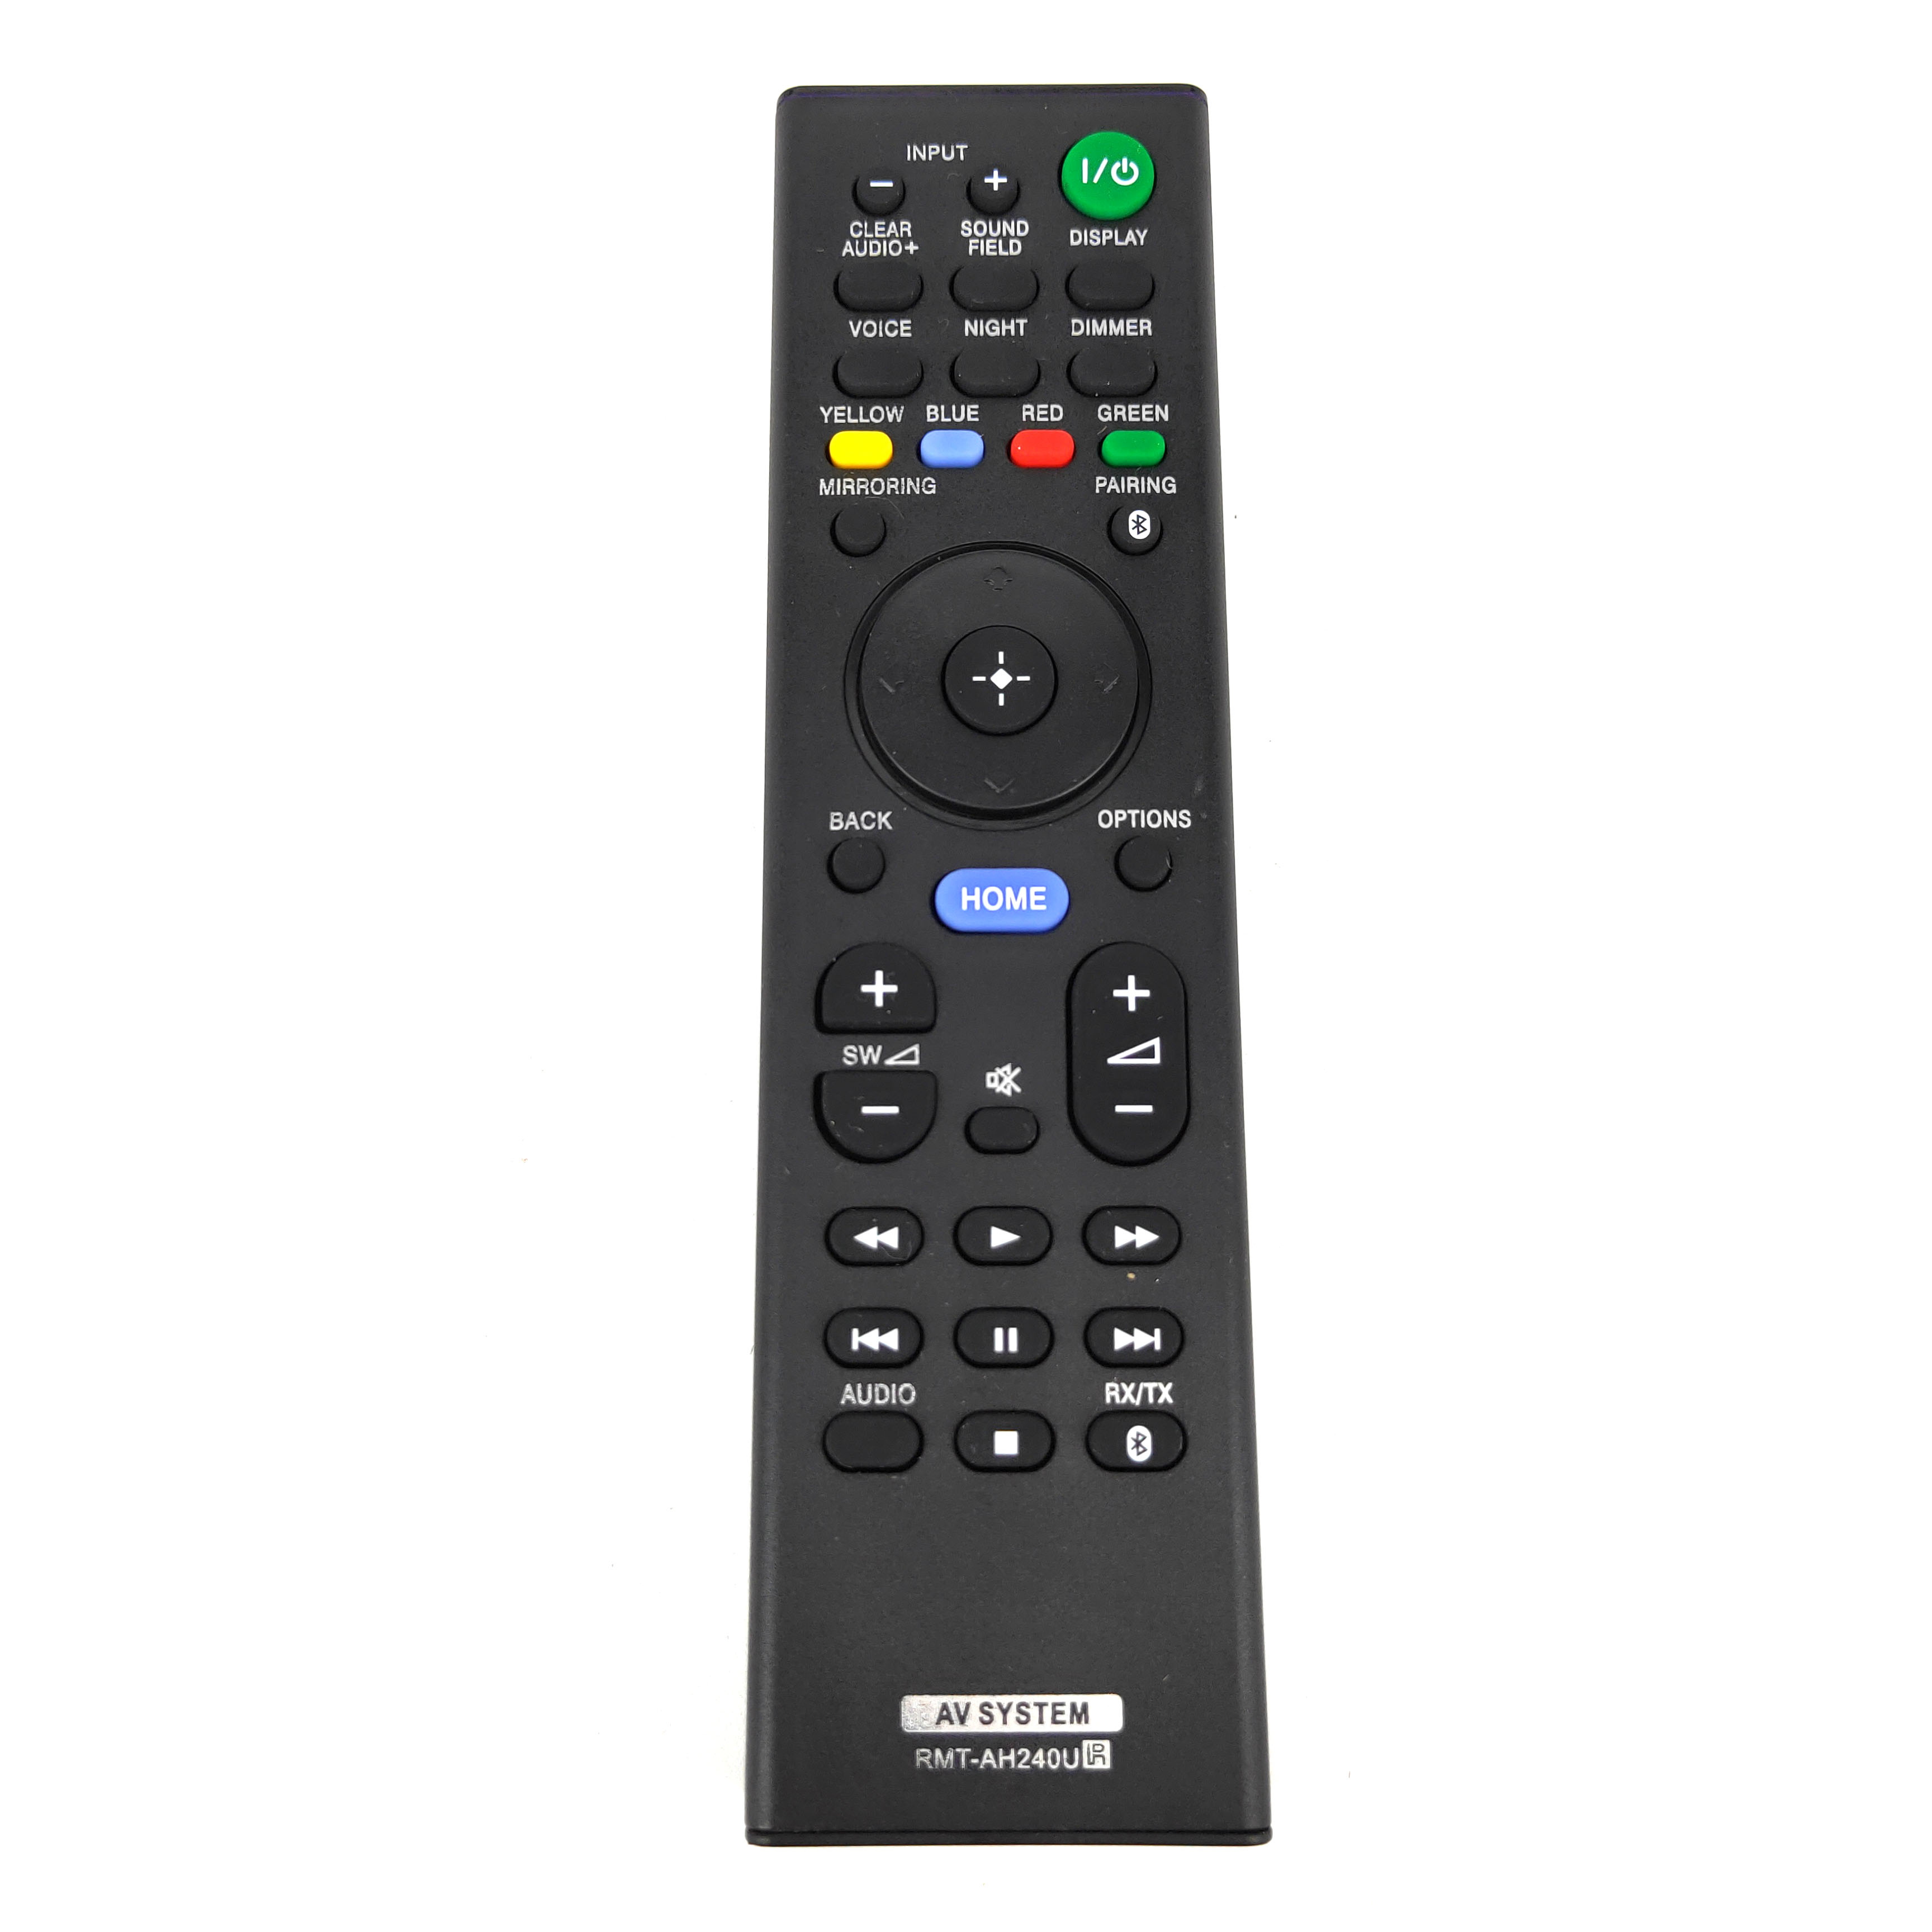 NEW RMT-AH240U Replacement for SONY AV System Remote control for HT-CT790 HT-NT5 HT-XT2 SA-CT790 Fernbedienung